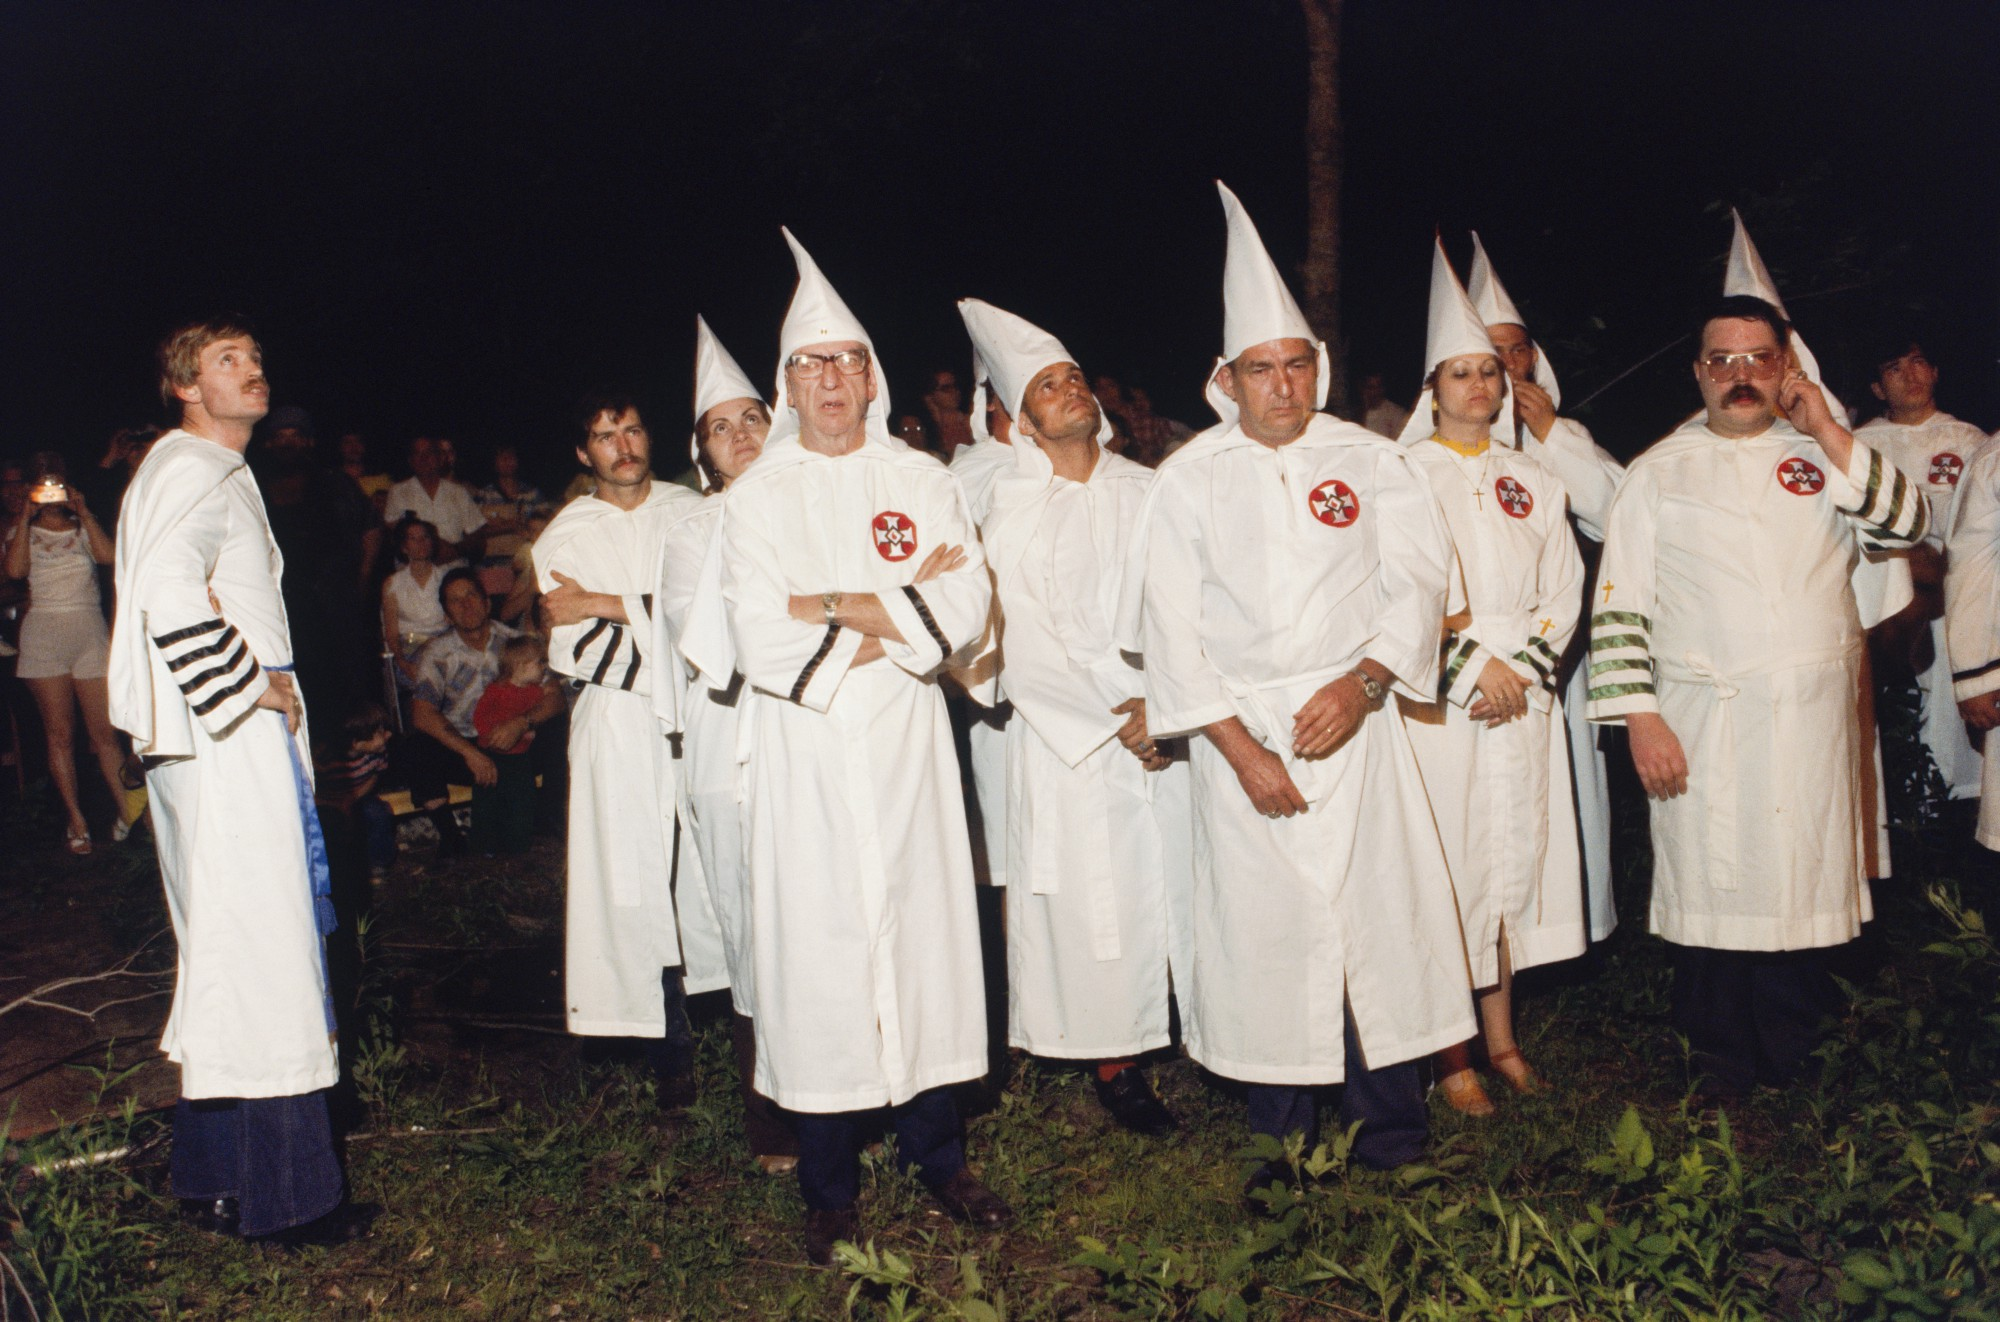 ku klux klan The ku klux klan is a secret organization of white protestant men in the united states which promotes violence against black people, jews, and other minorities.